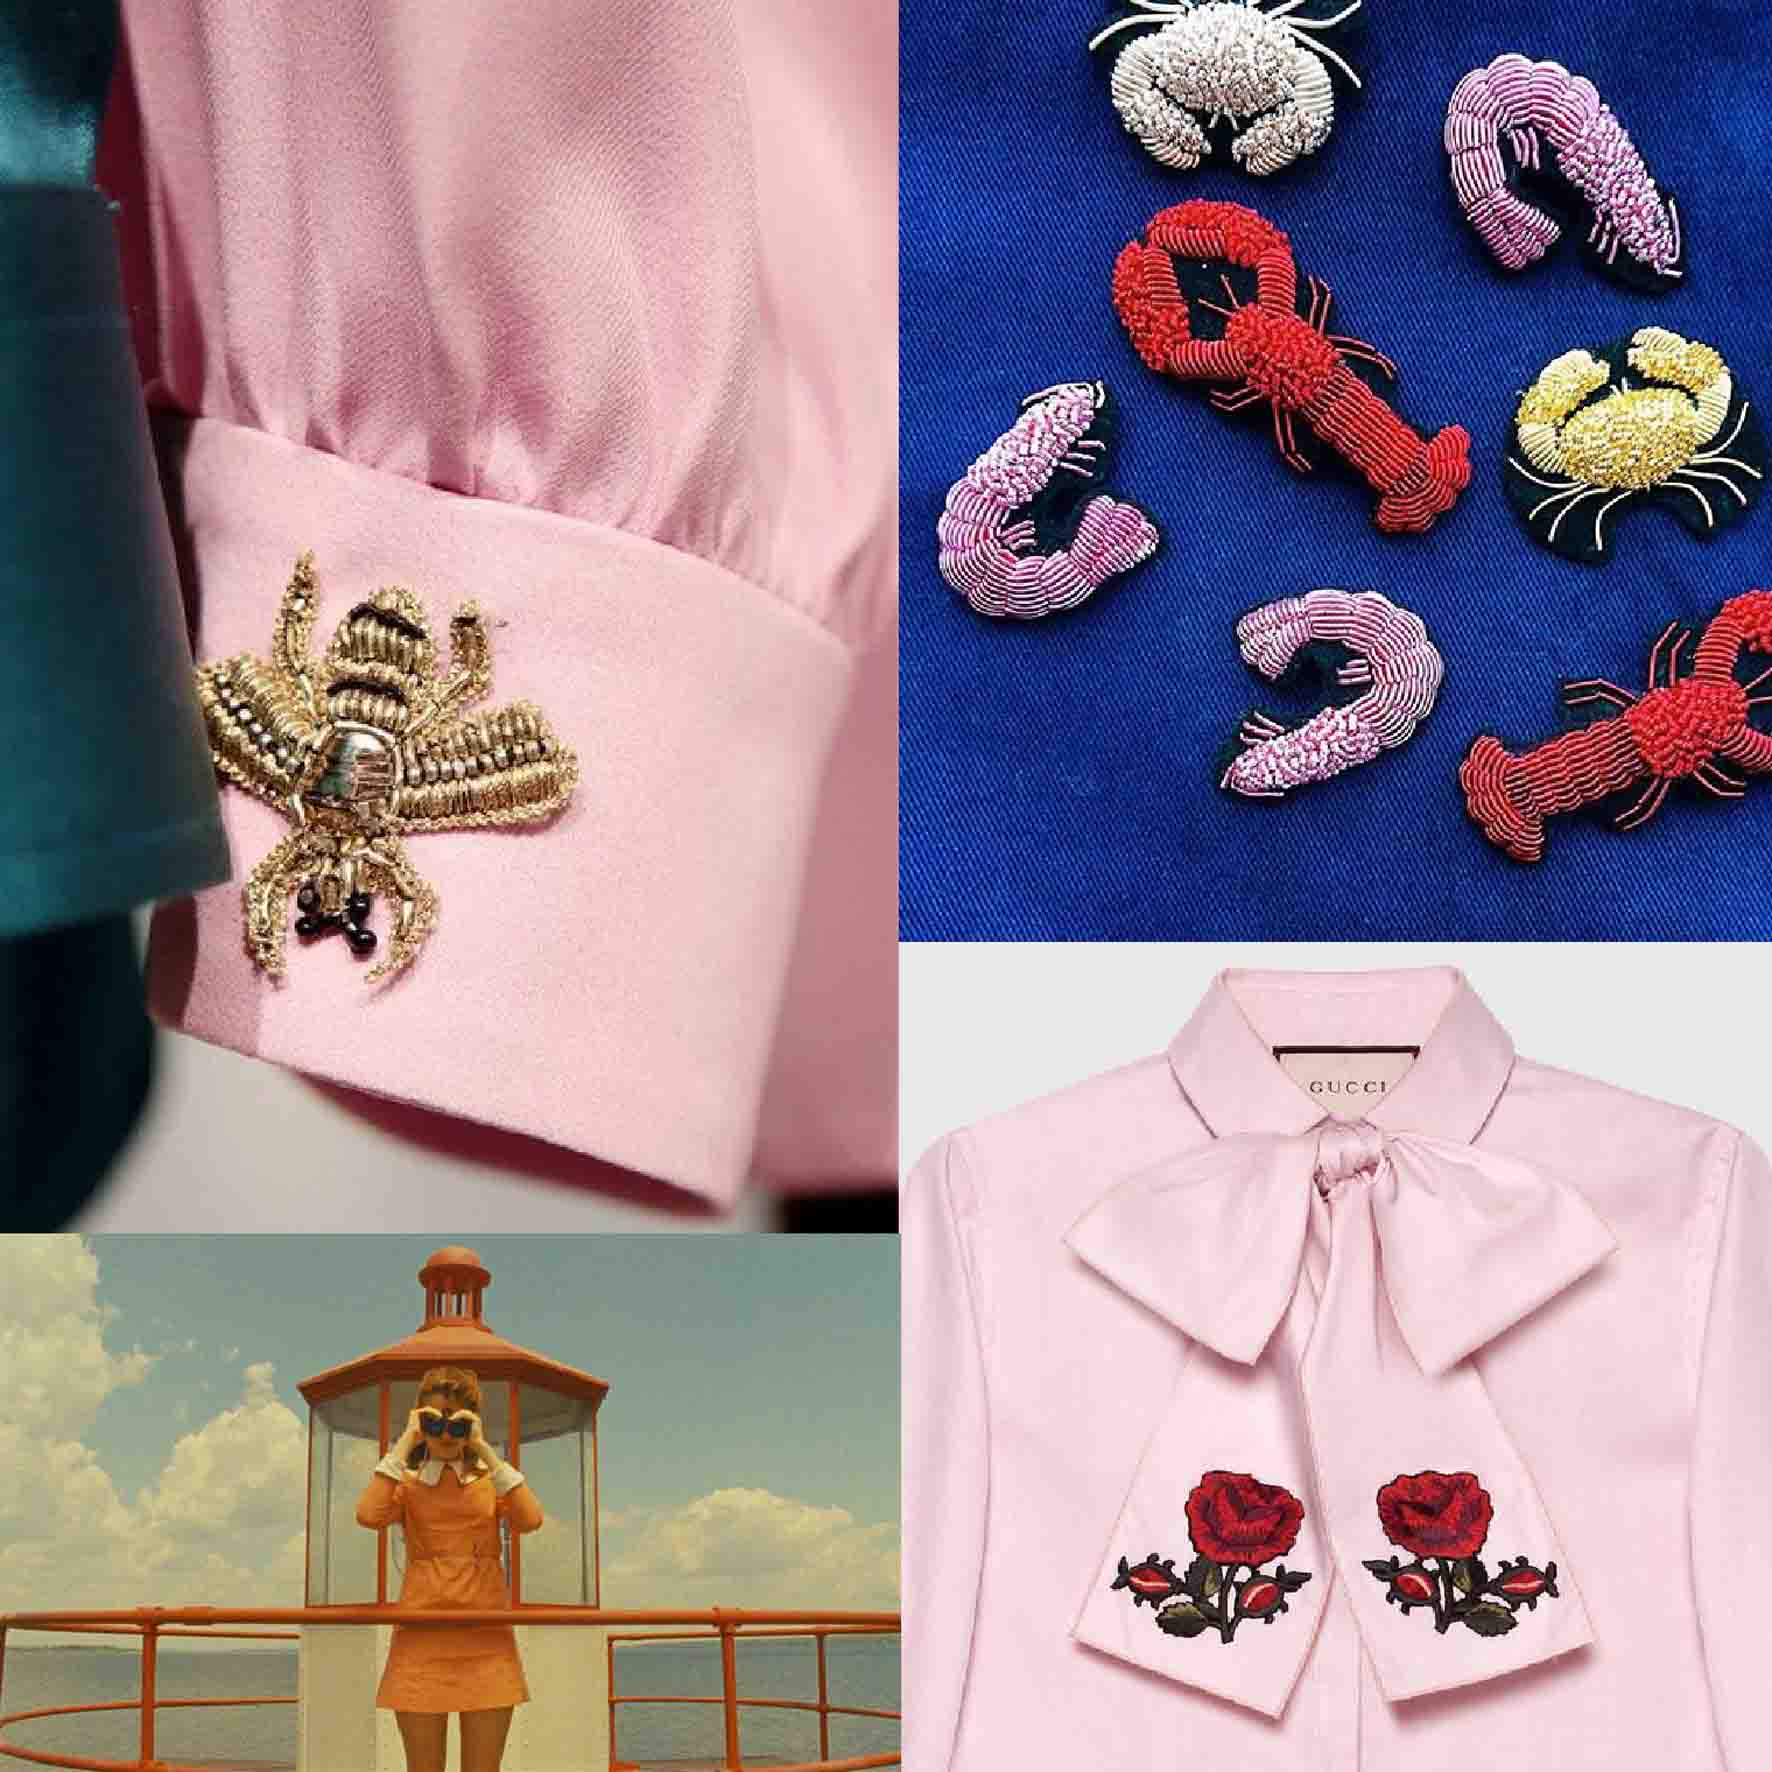 Inspiration: Top left and bottom right Gucci bottom left Suzy Bishop in Moonrise Kingdom Top Right Hattie McGill Embroidery